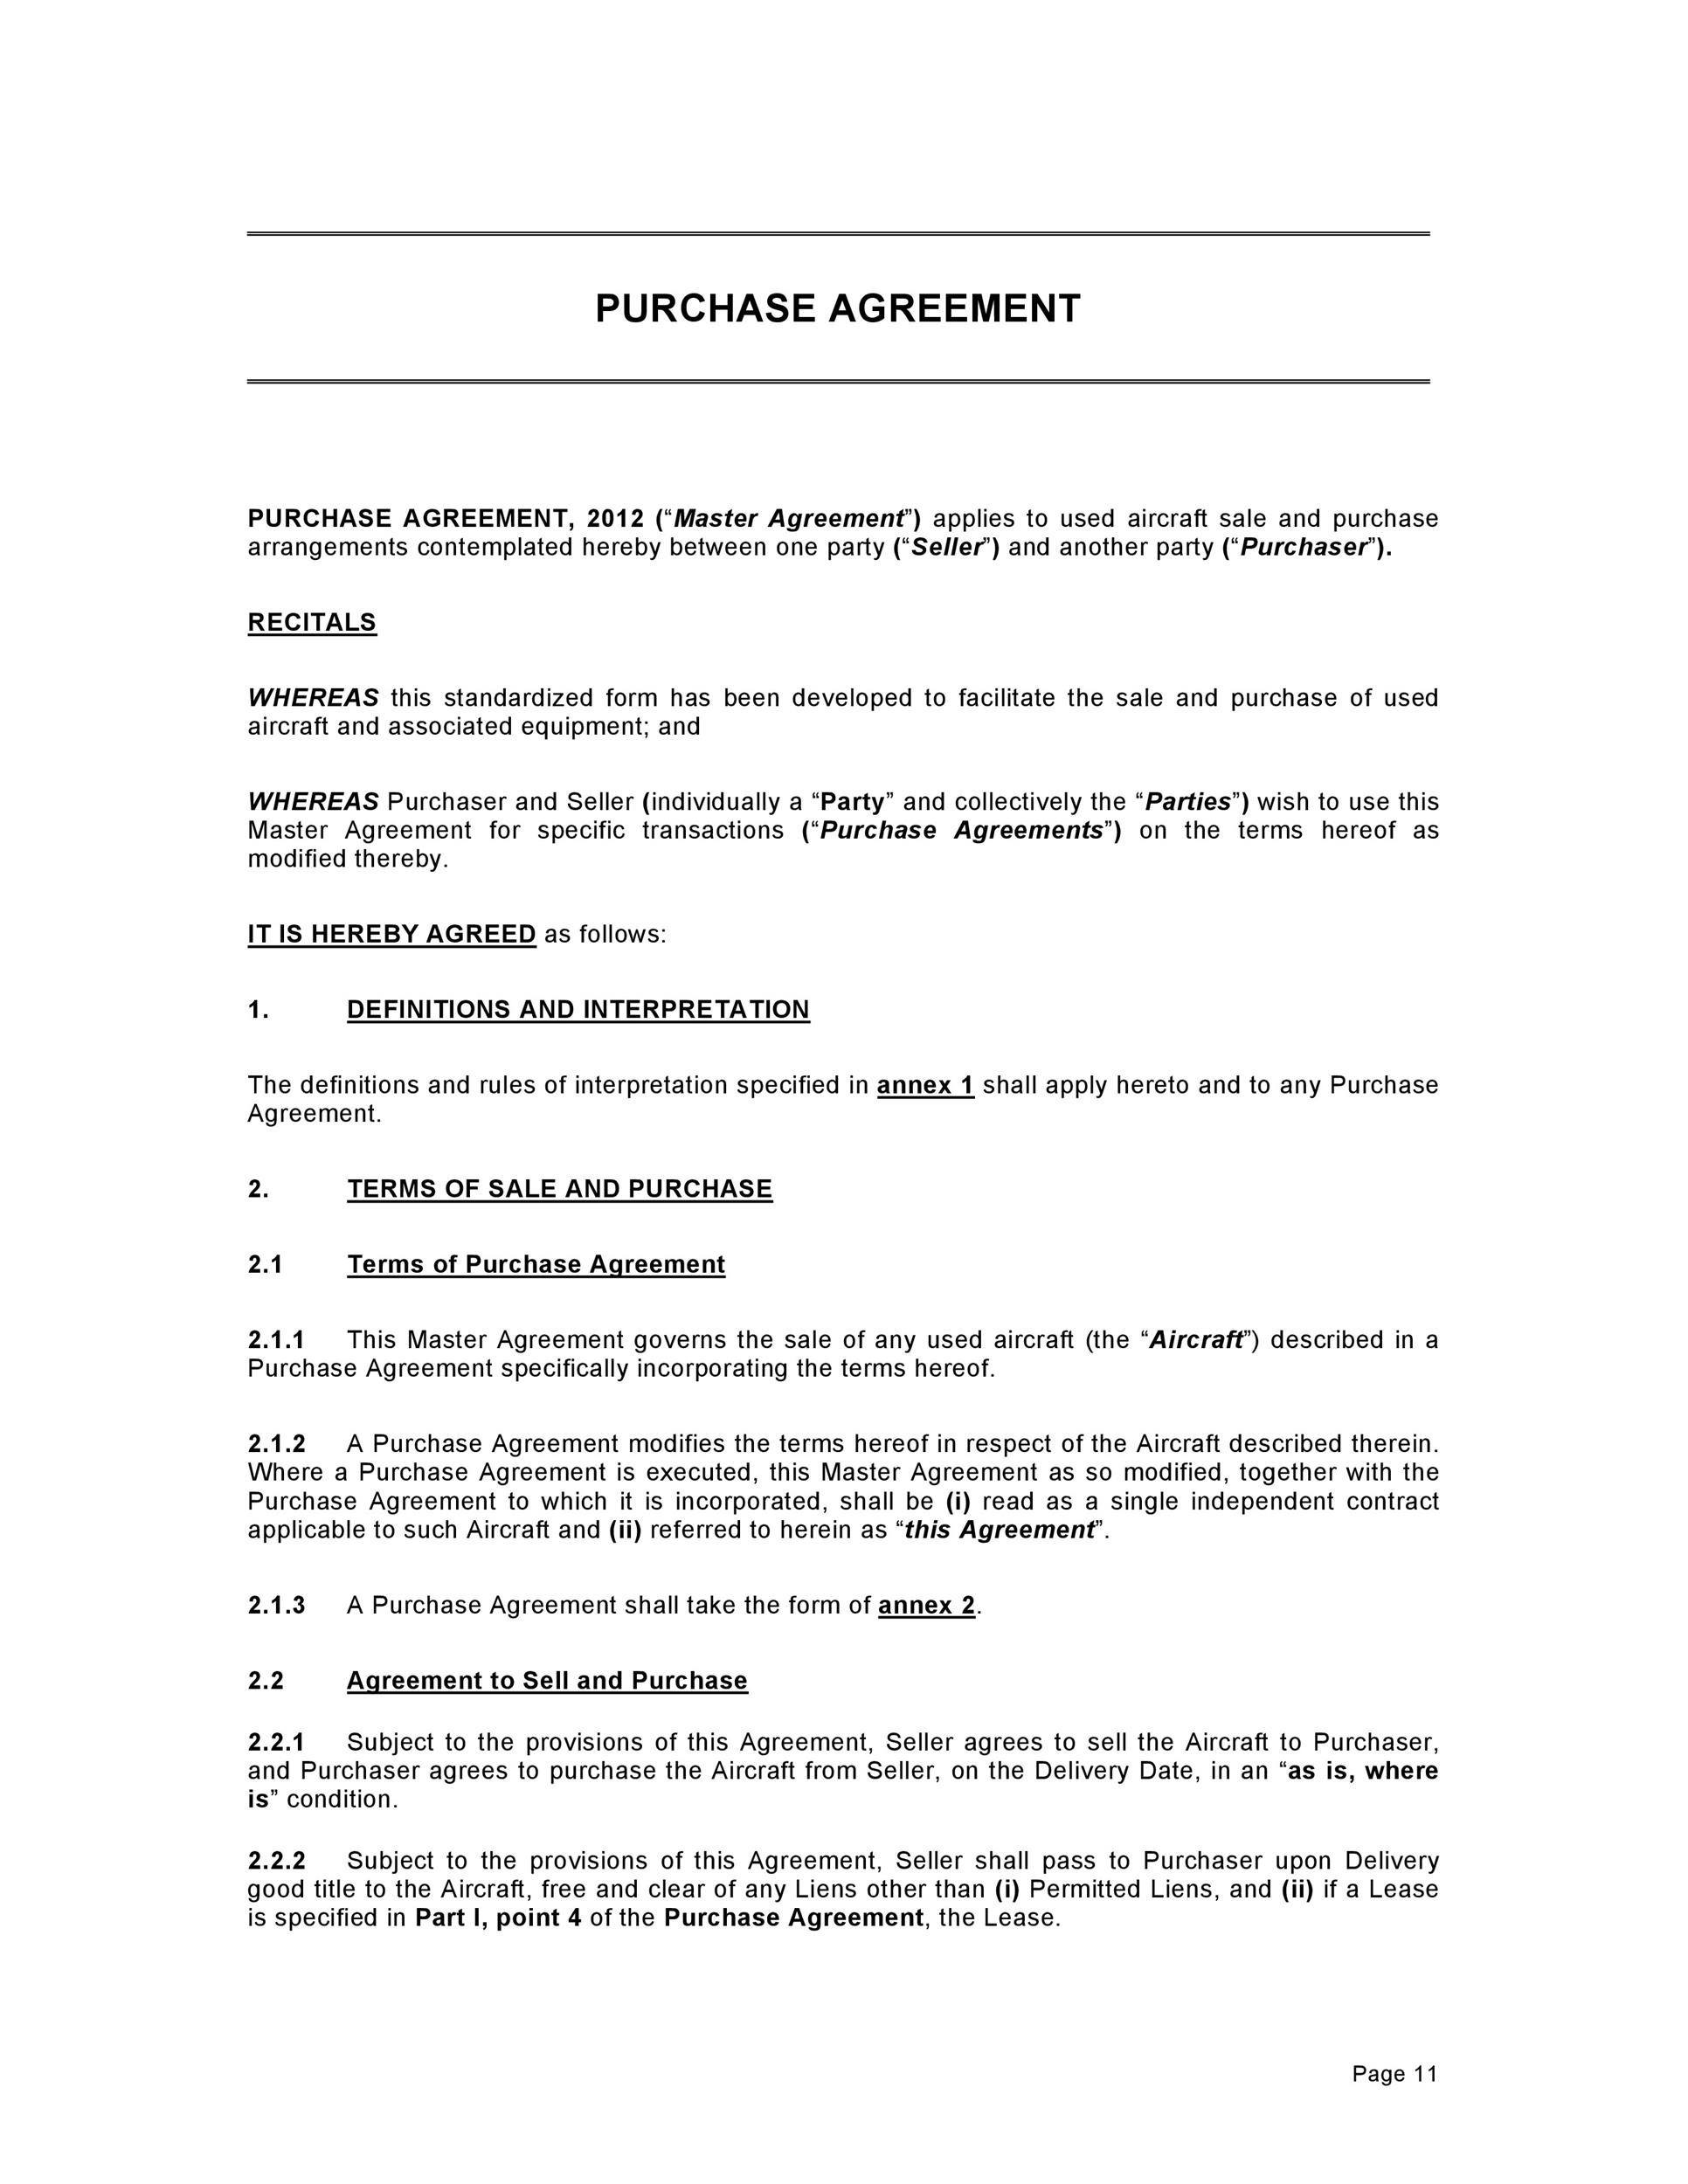 Free Purchase Agreement Template 11